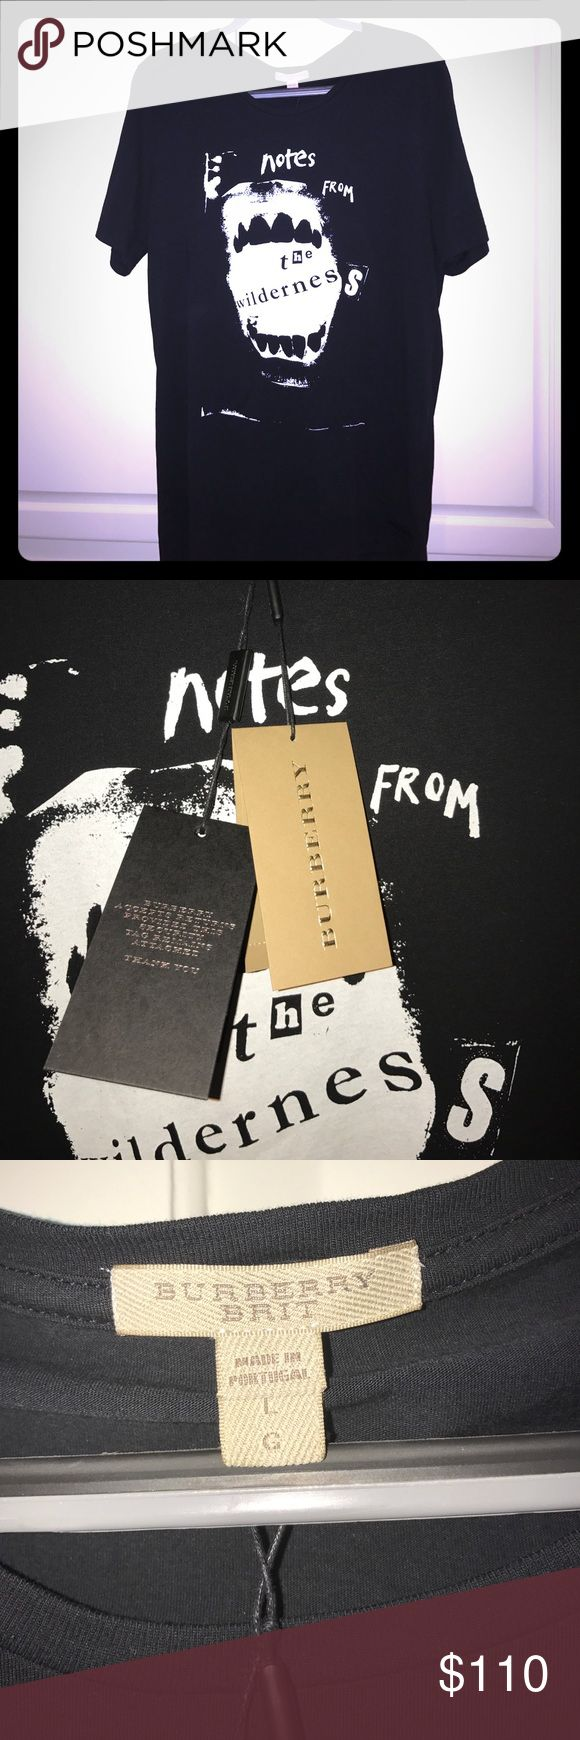 NWT Burberry Brit Men's shirt Never been worn, still has the tags attached! This is a super cool Burberry t-shirt! Burberry Shirts Tees - Short Sleeve